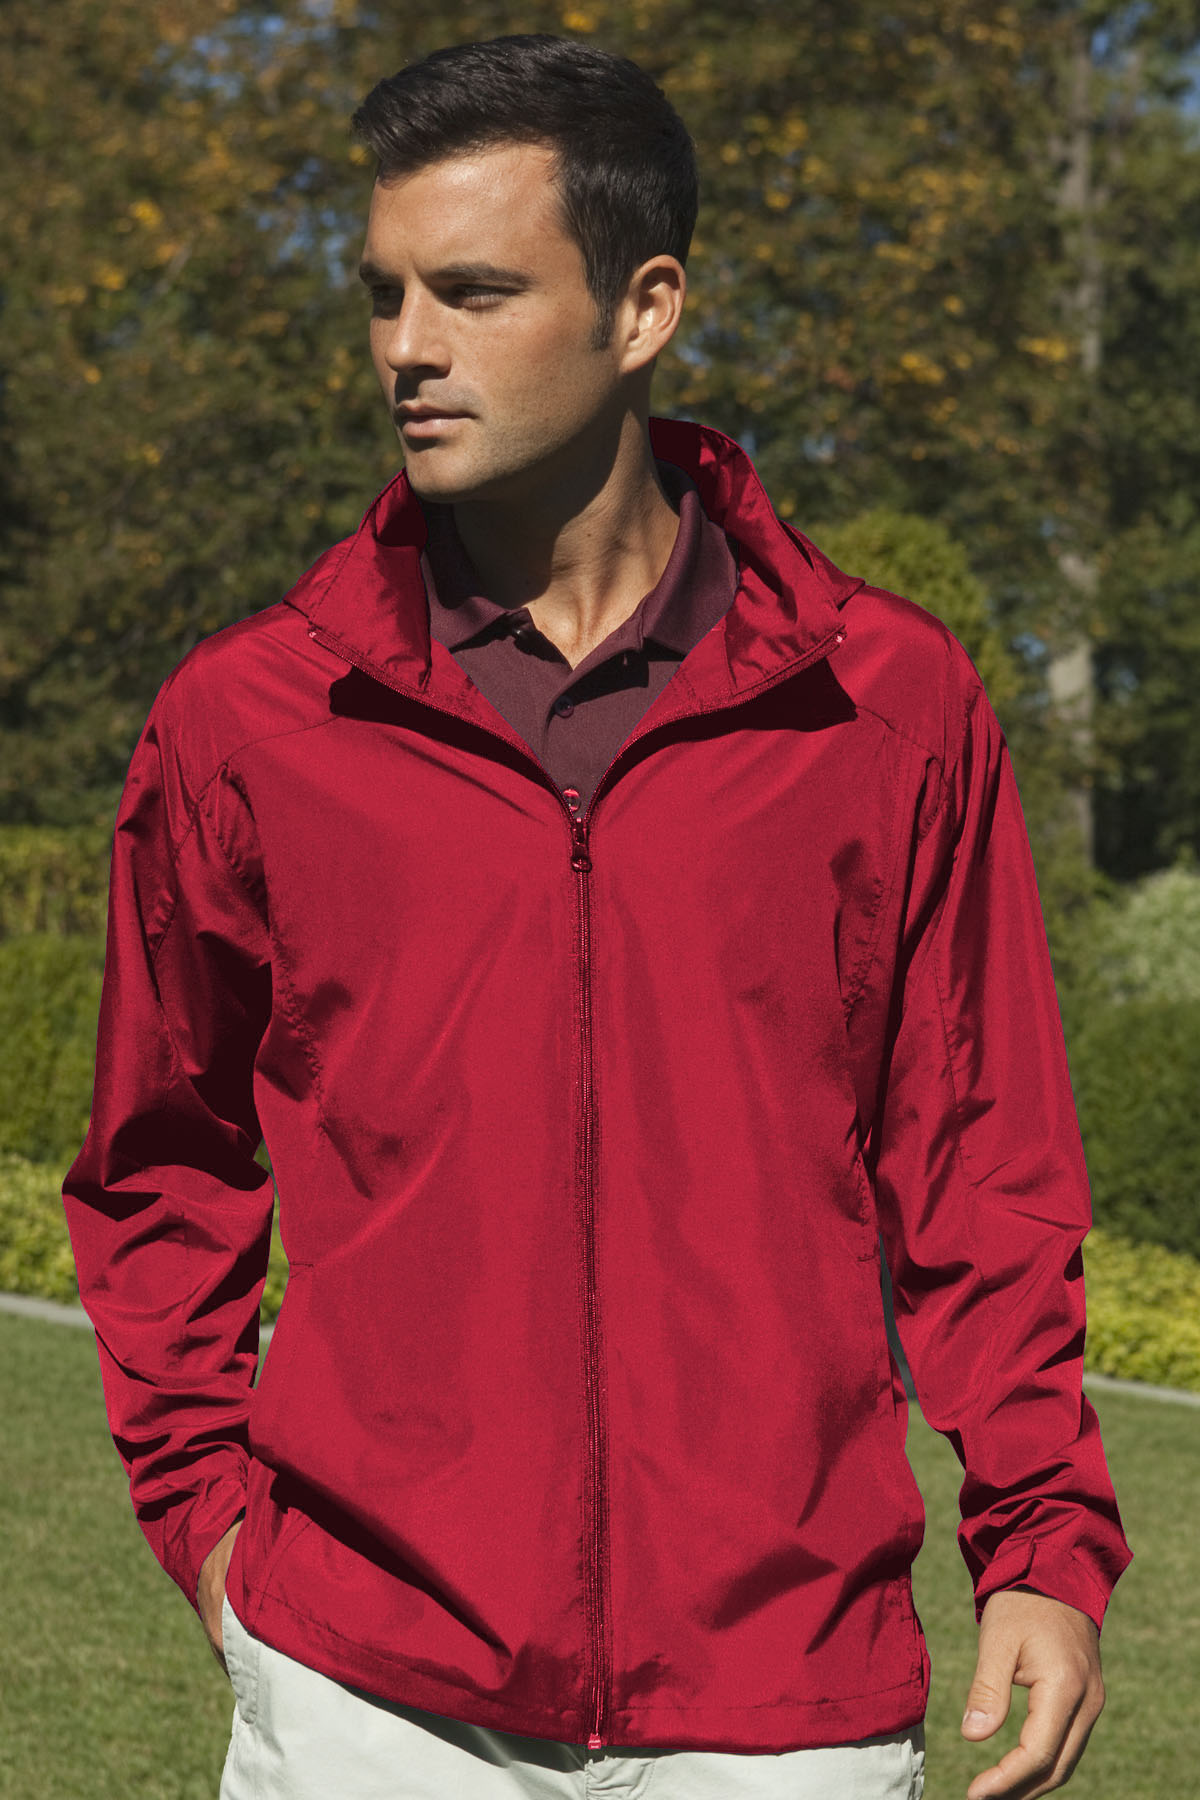 Vantage 7070 - Full-Zip Lightweight Hooded Jacket